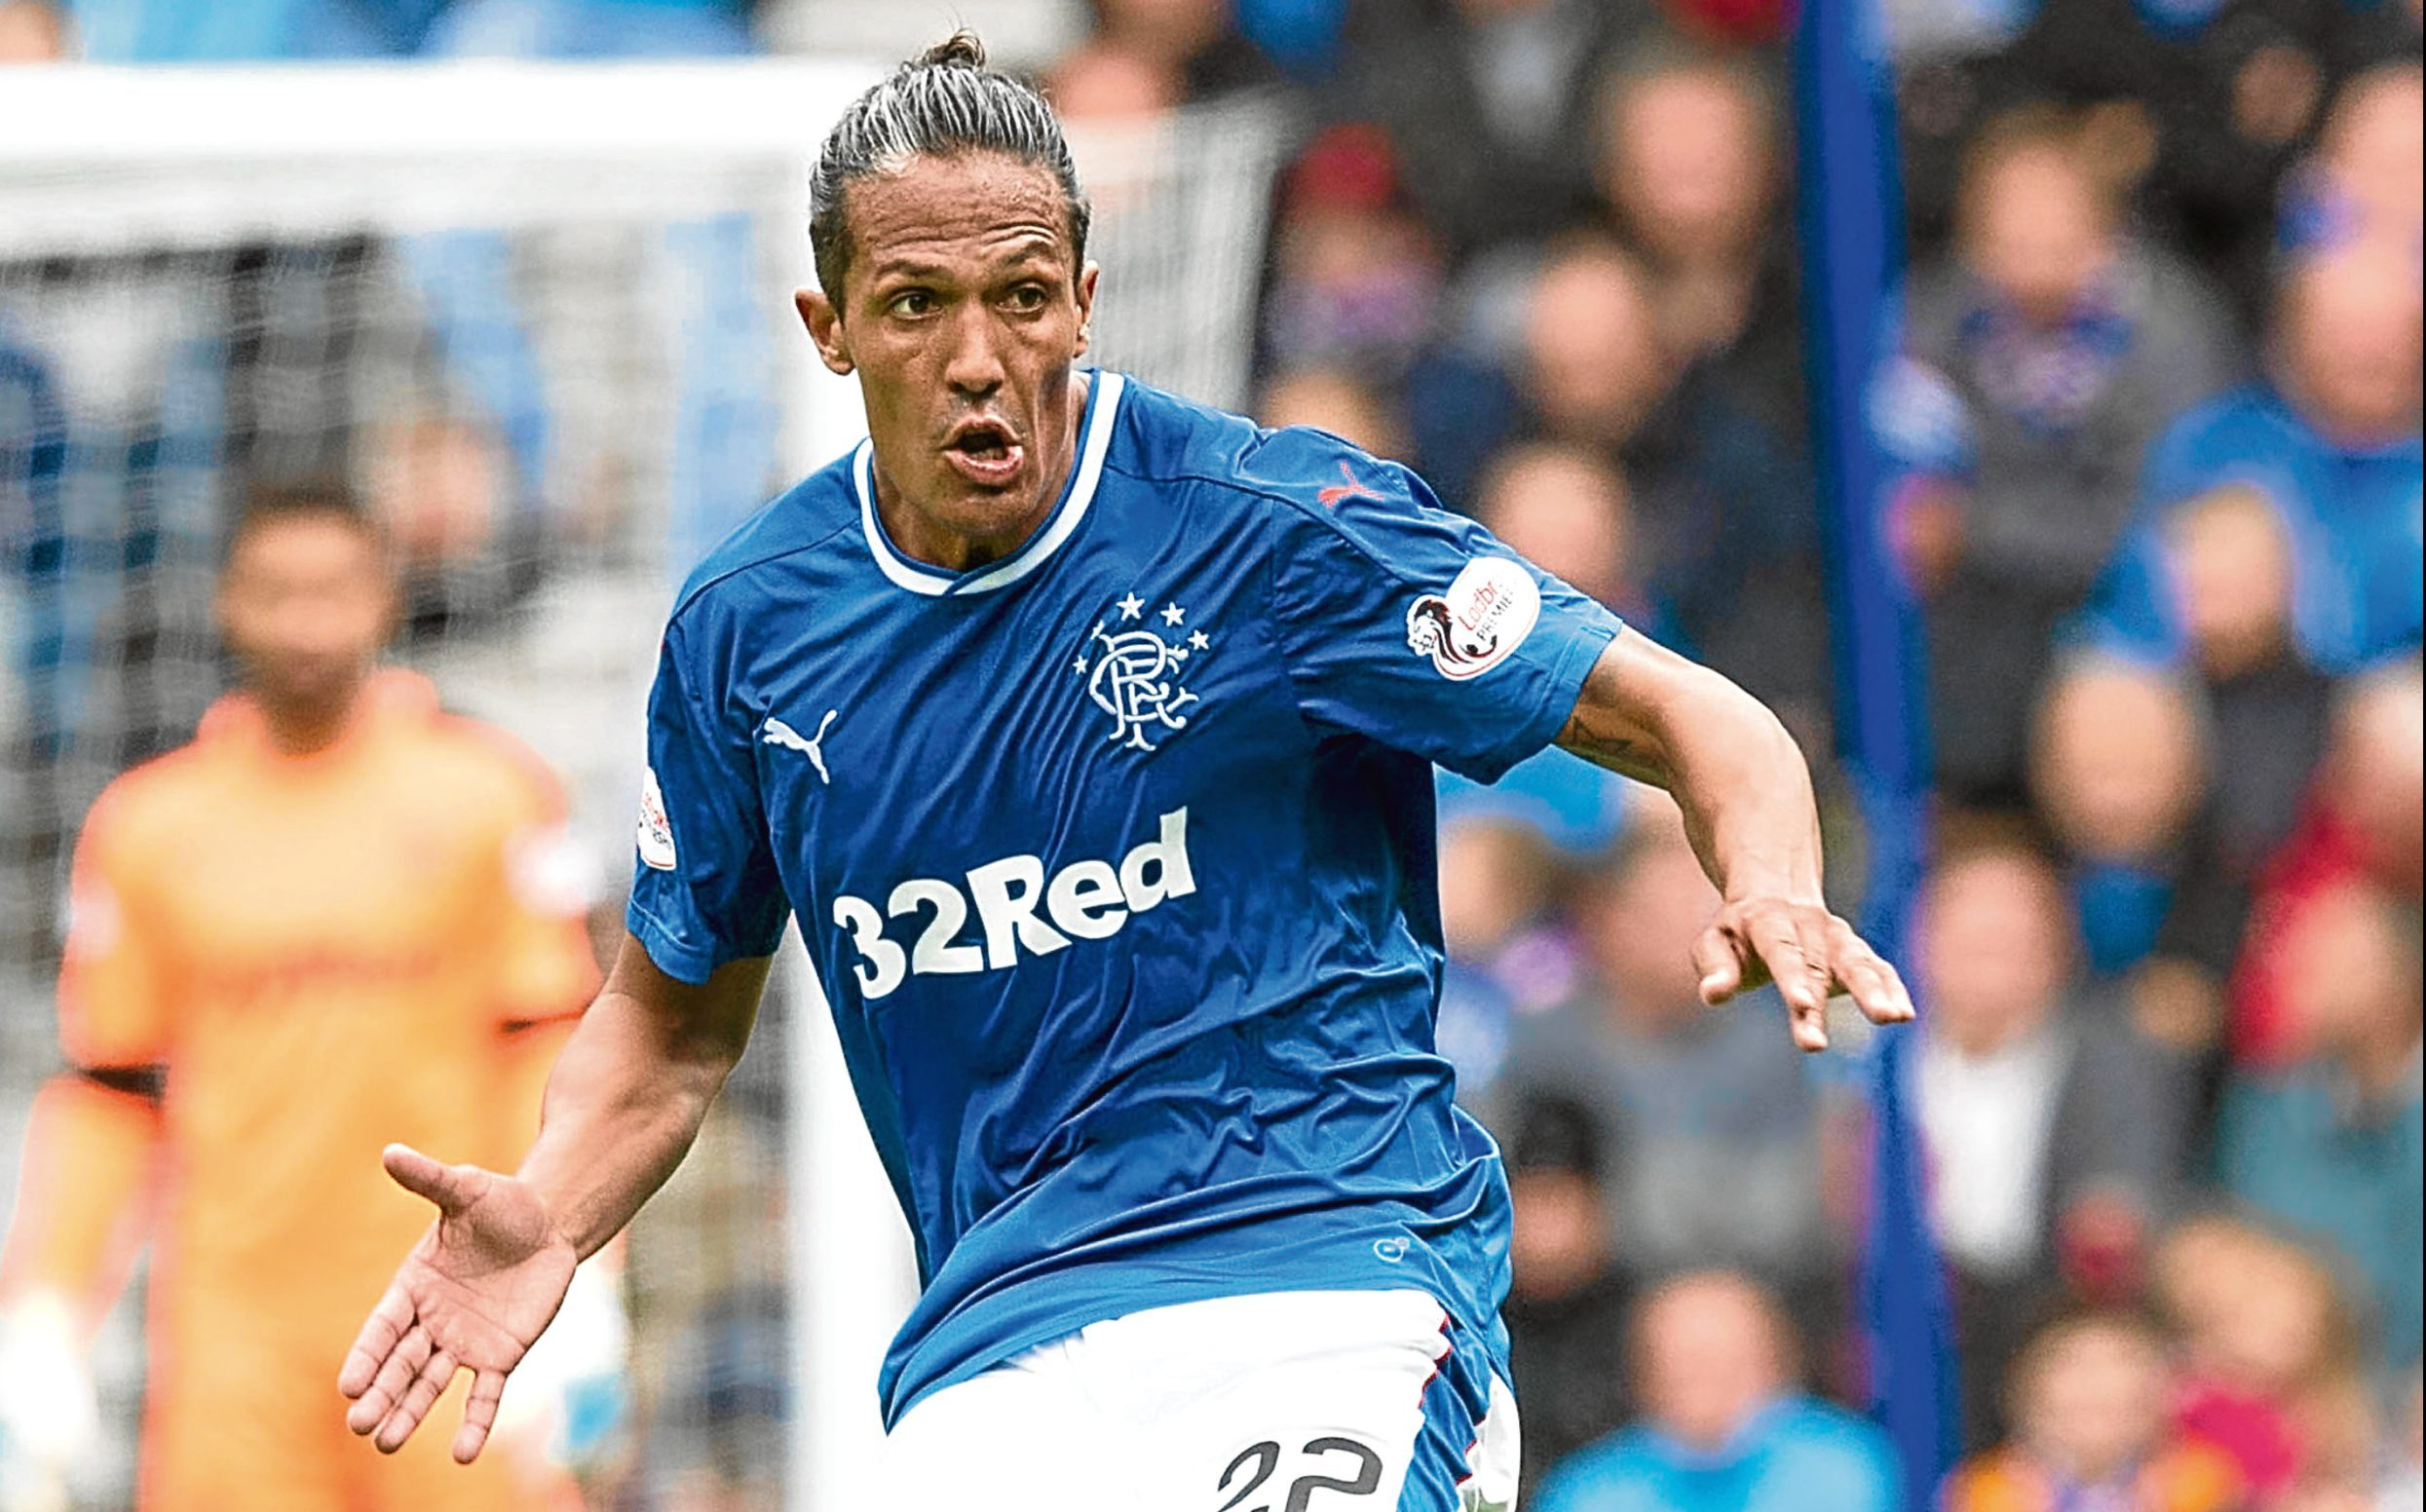 Bruno Alves in action for Rangers (SNS Group)